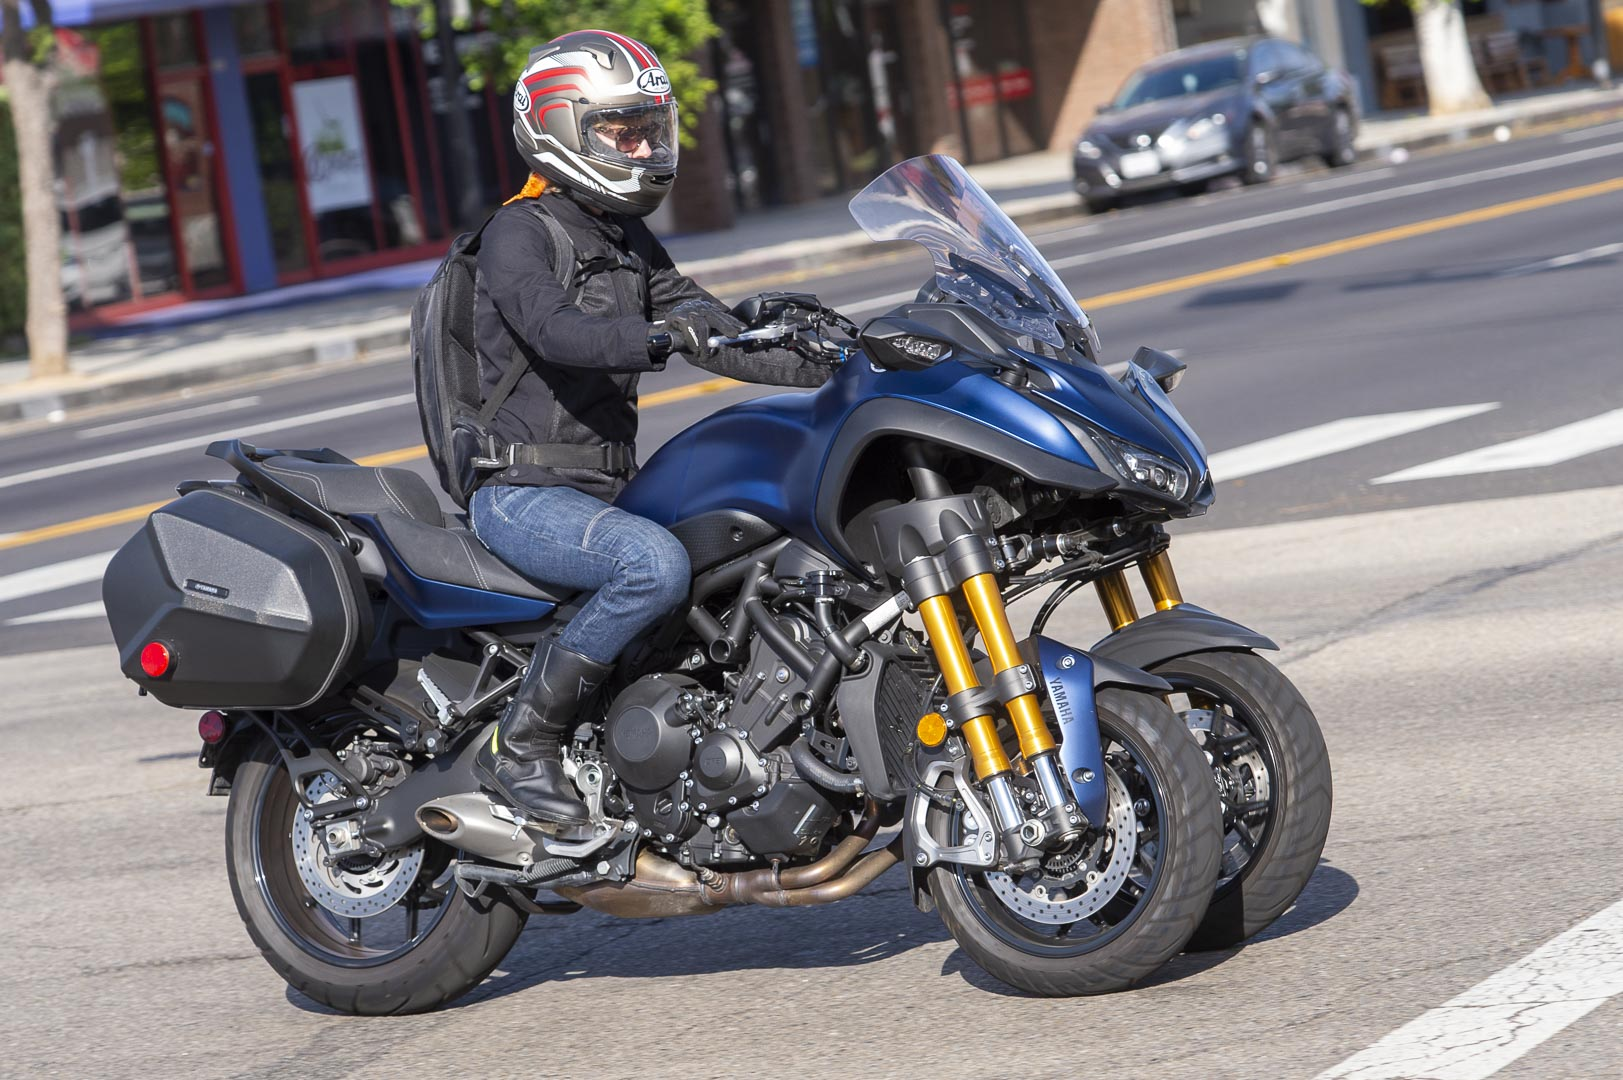 2019 Yamaha Niken GT: Commuter Motorcycle Test